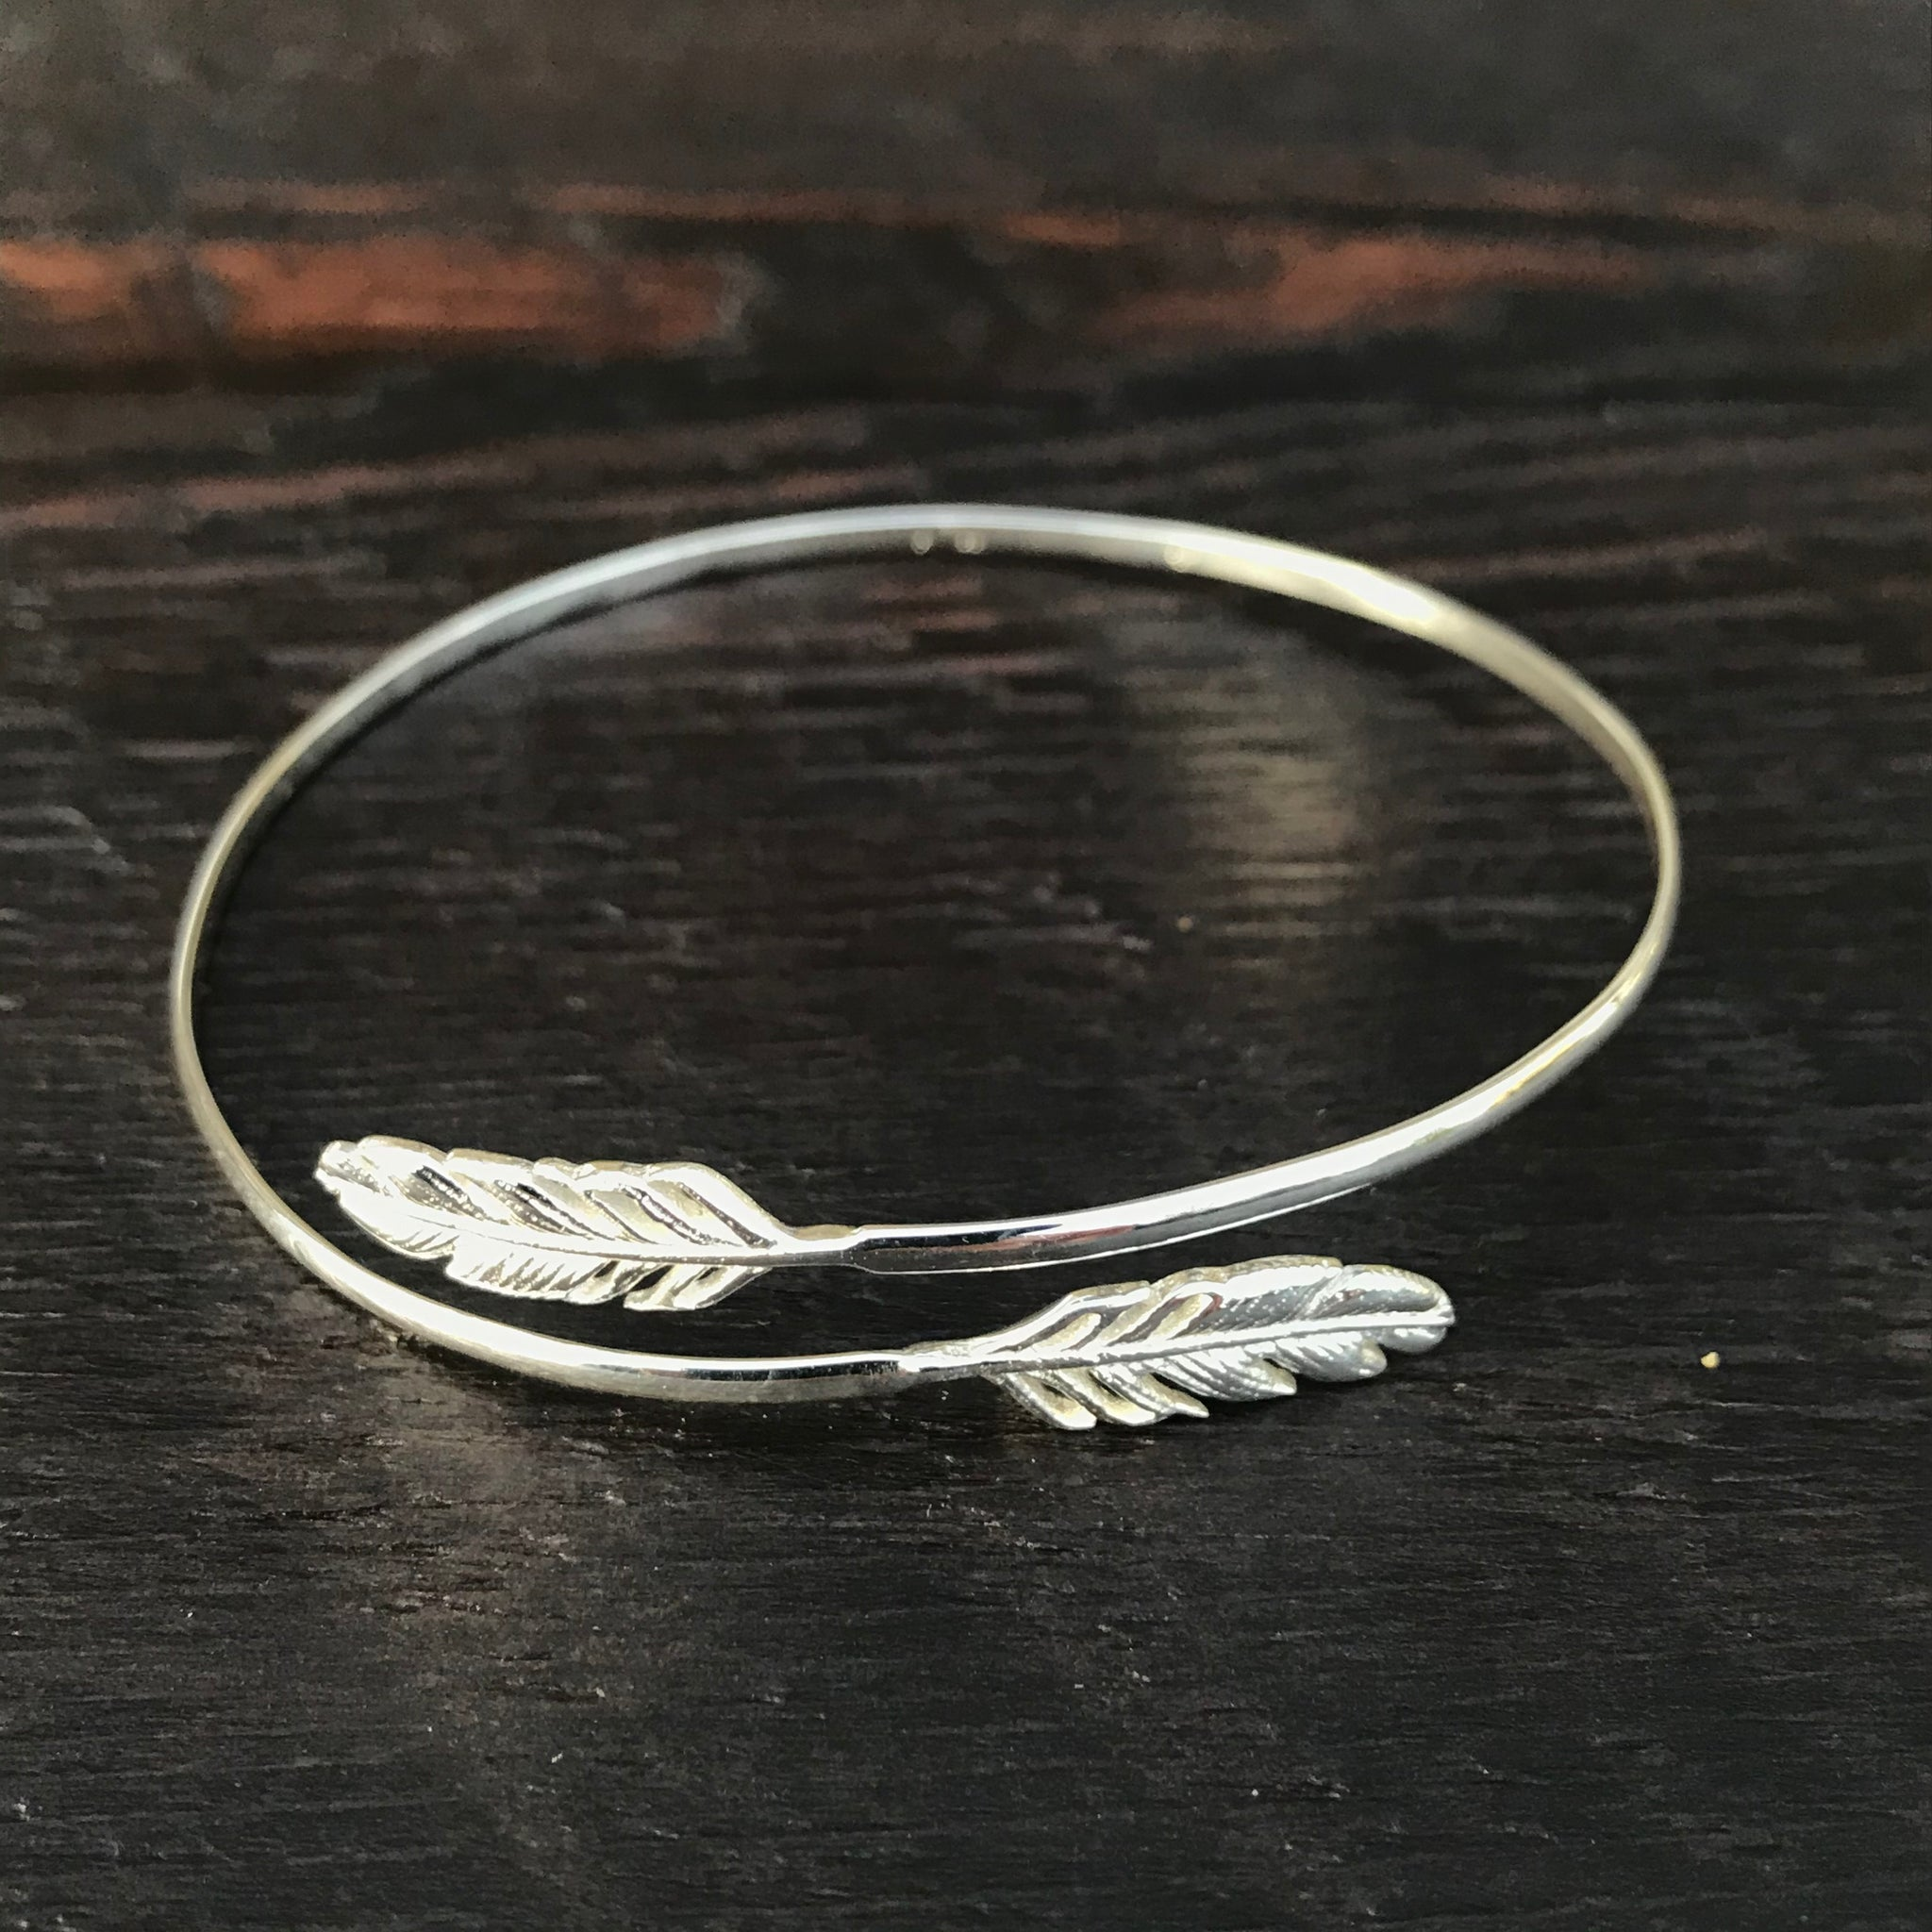 'Feather' Design Sterling Silver Cuff Bangle